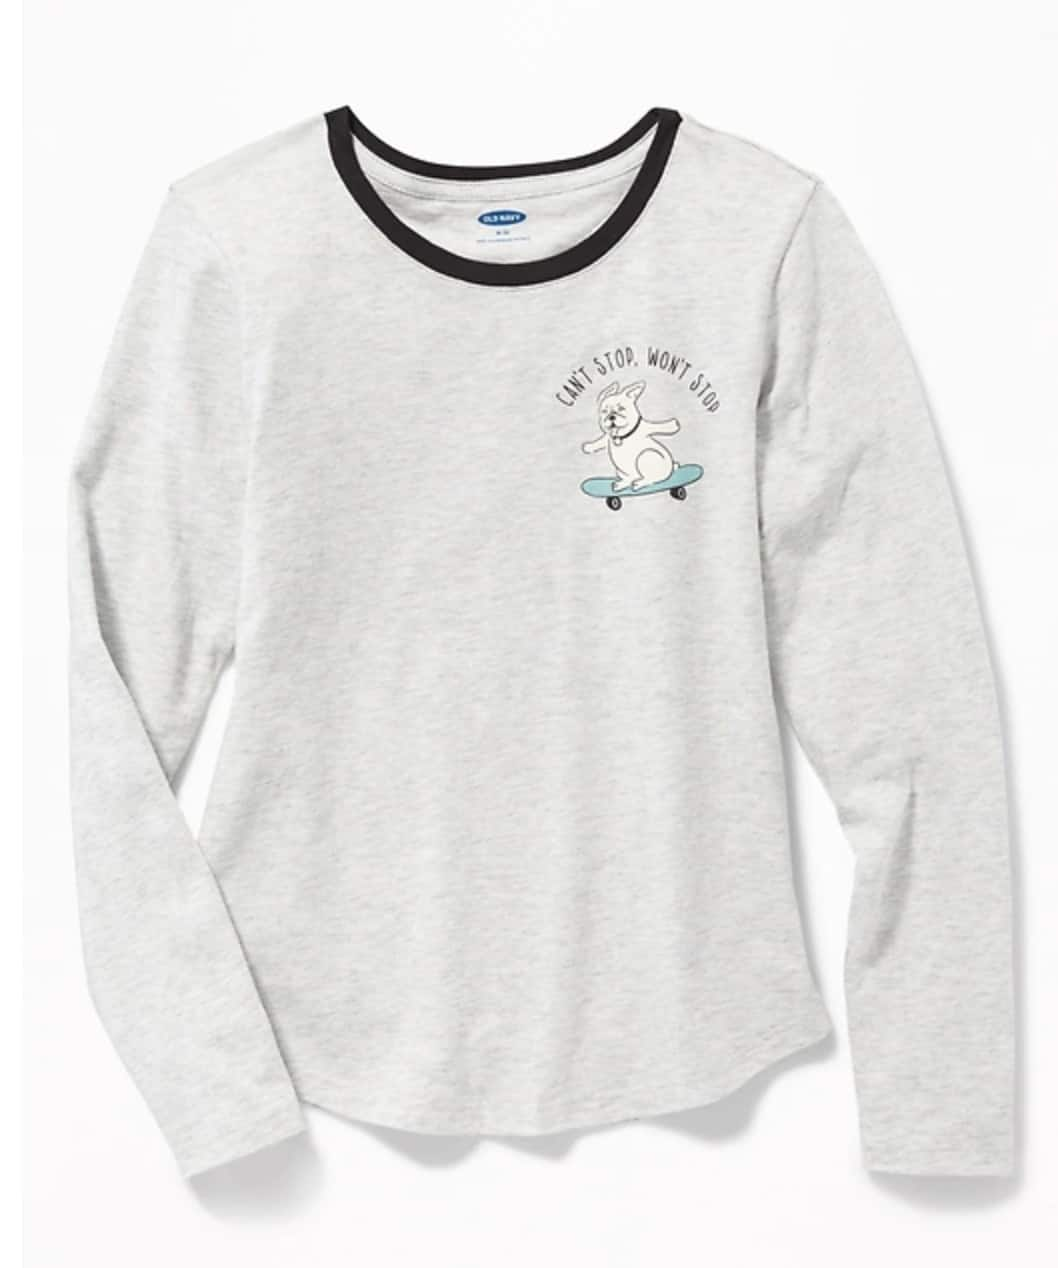 13abc1bcb Old Navy: Girls' Tees $3.13, Toddler Boys' Henley $3.50, Men's Graphic Tees  $5, more + FS on orders of $50+